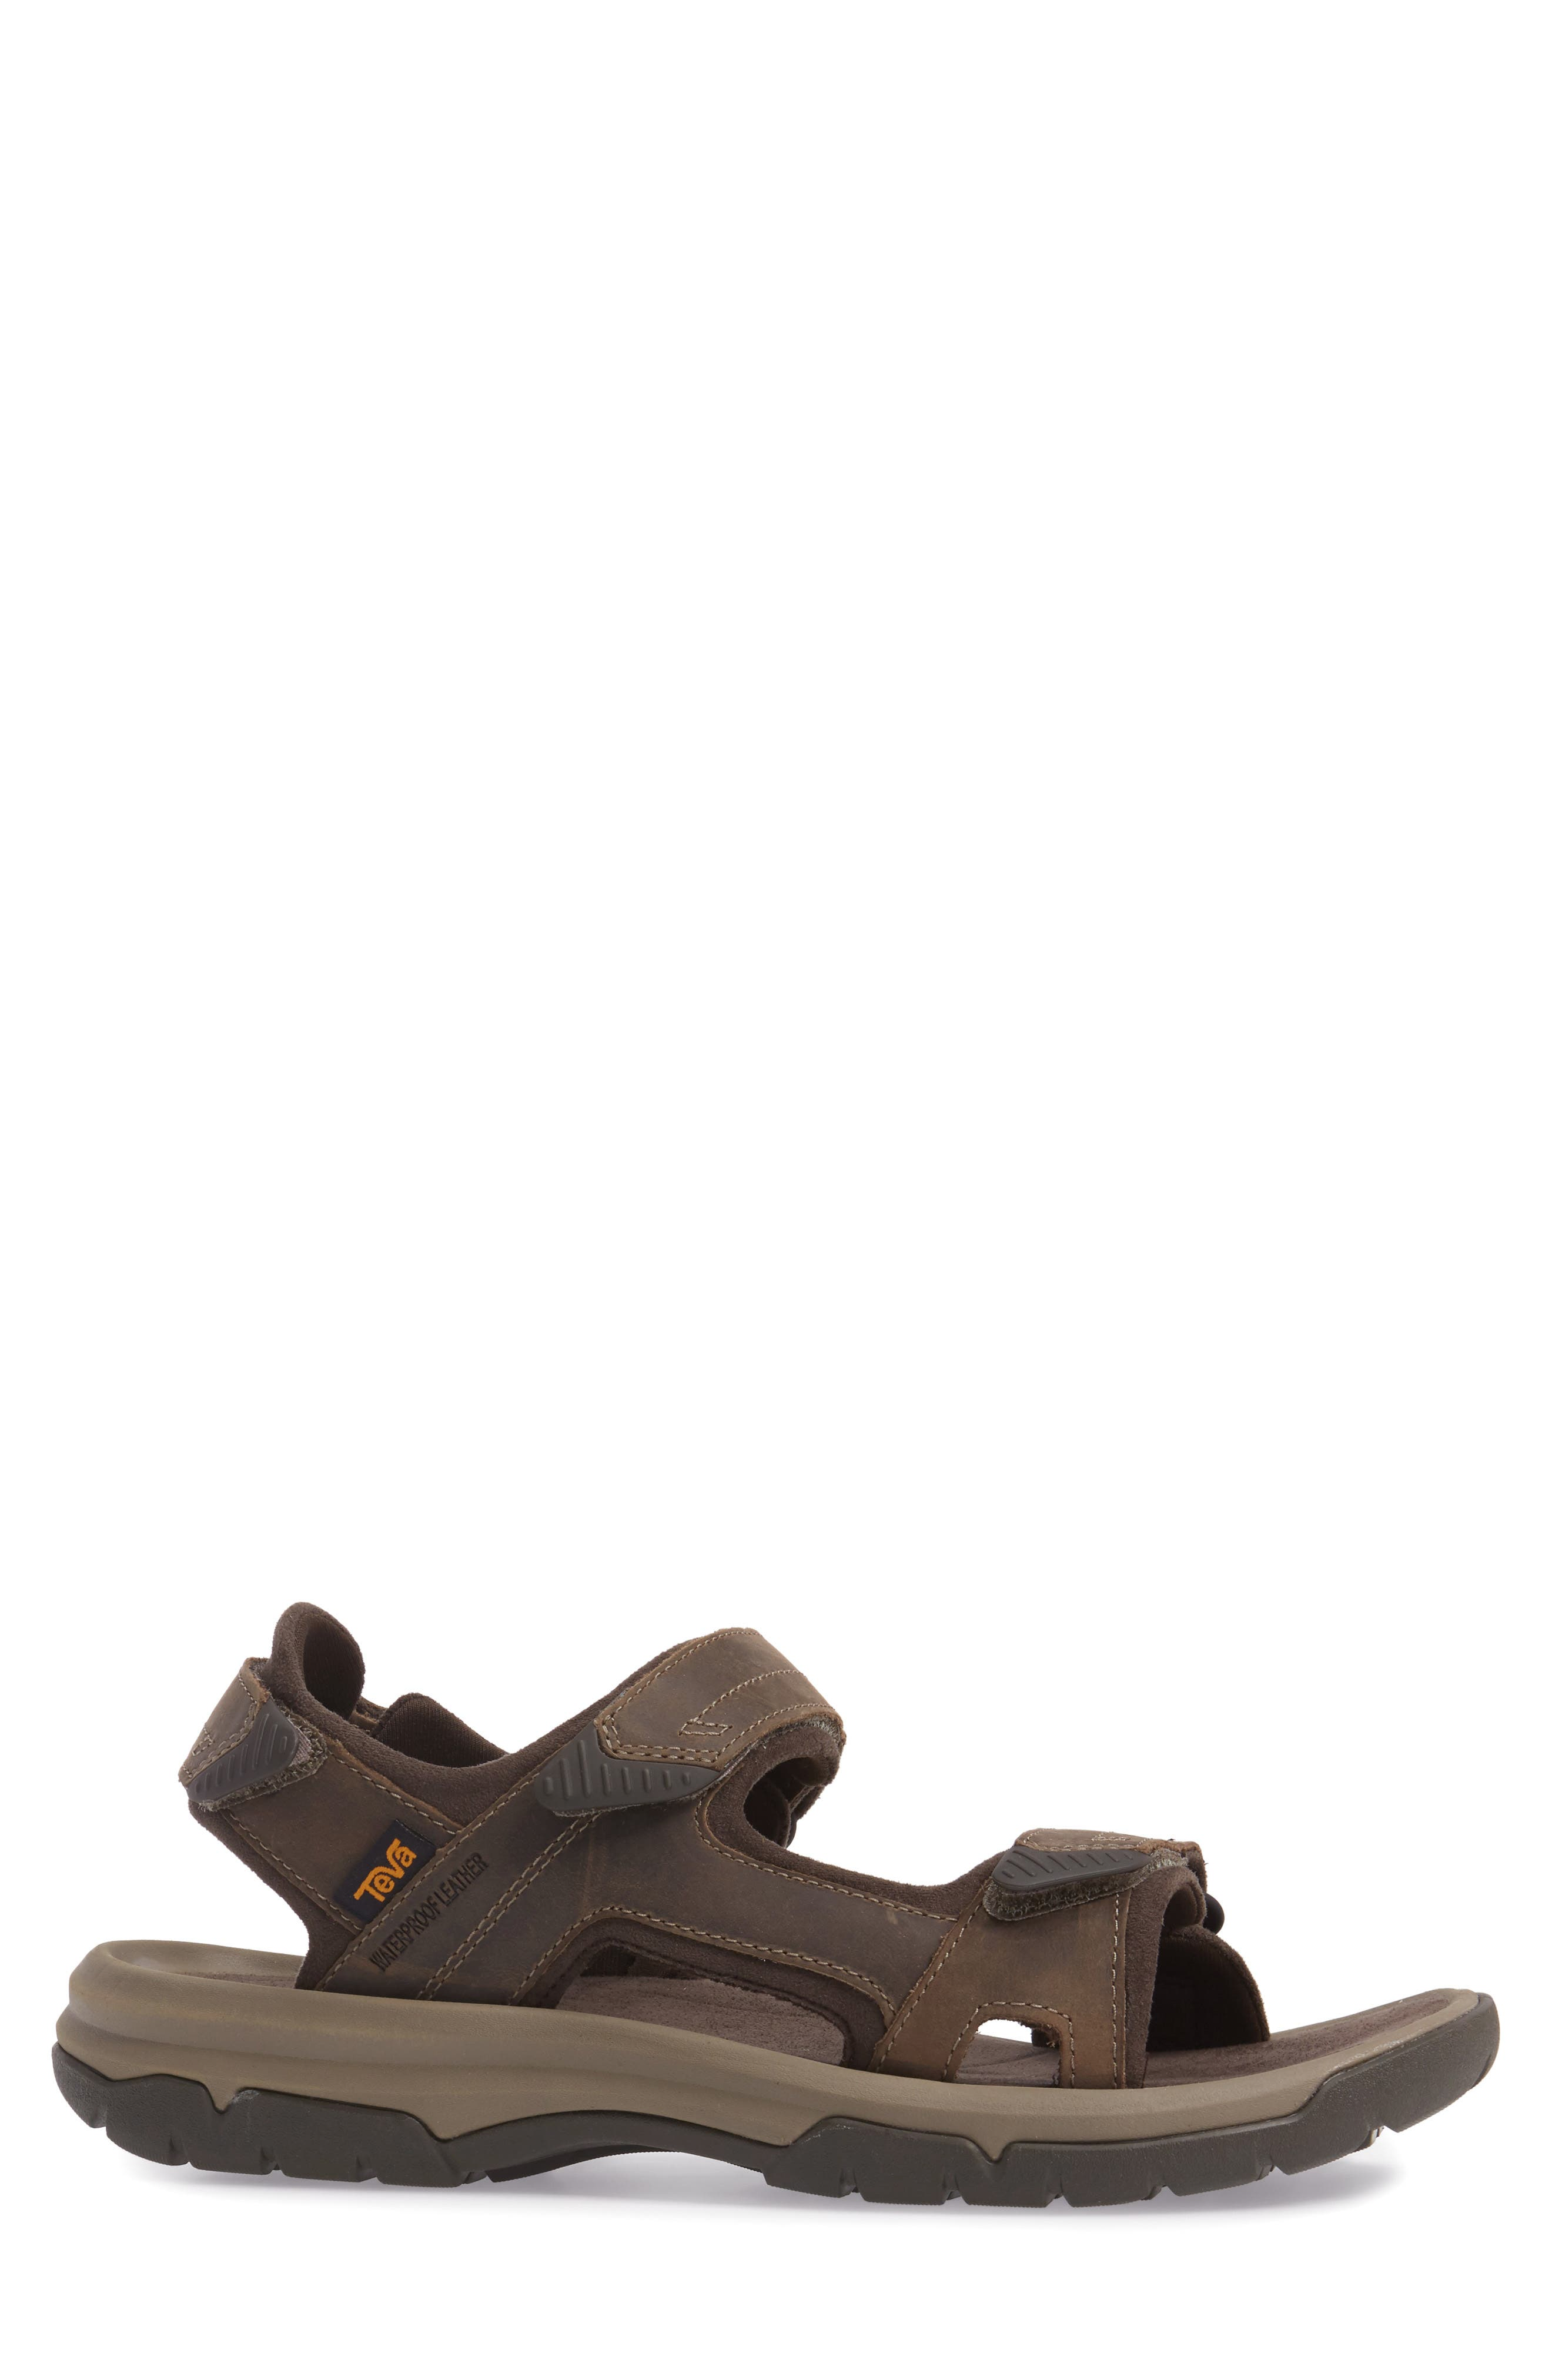 Langdon Sandal,                             Alternate thumbnail 3, color,                             Walnut